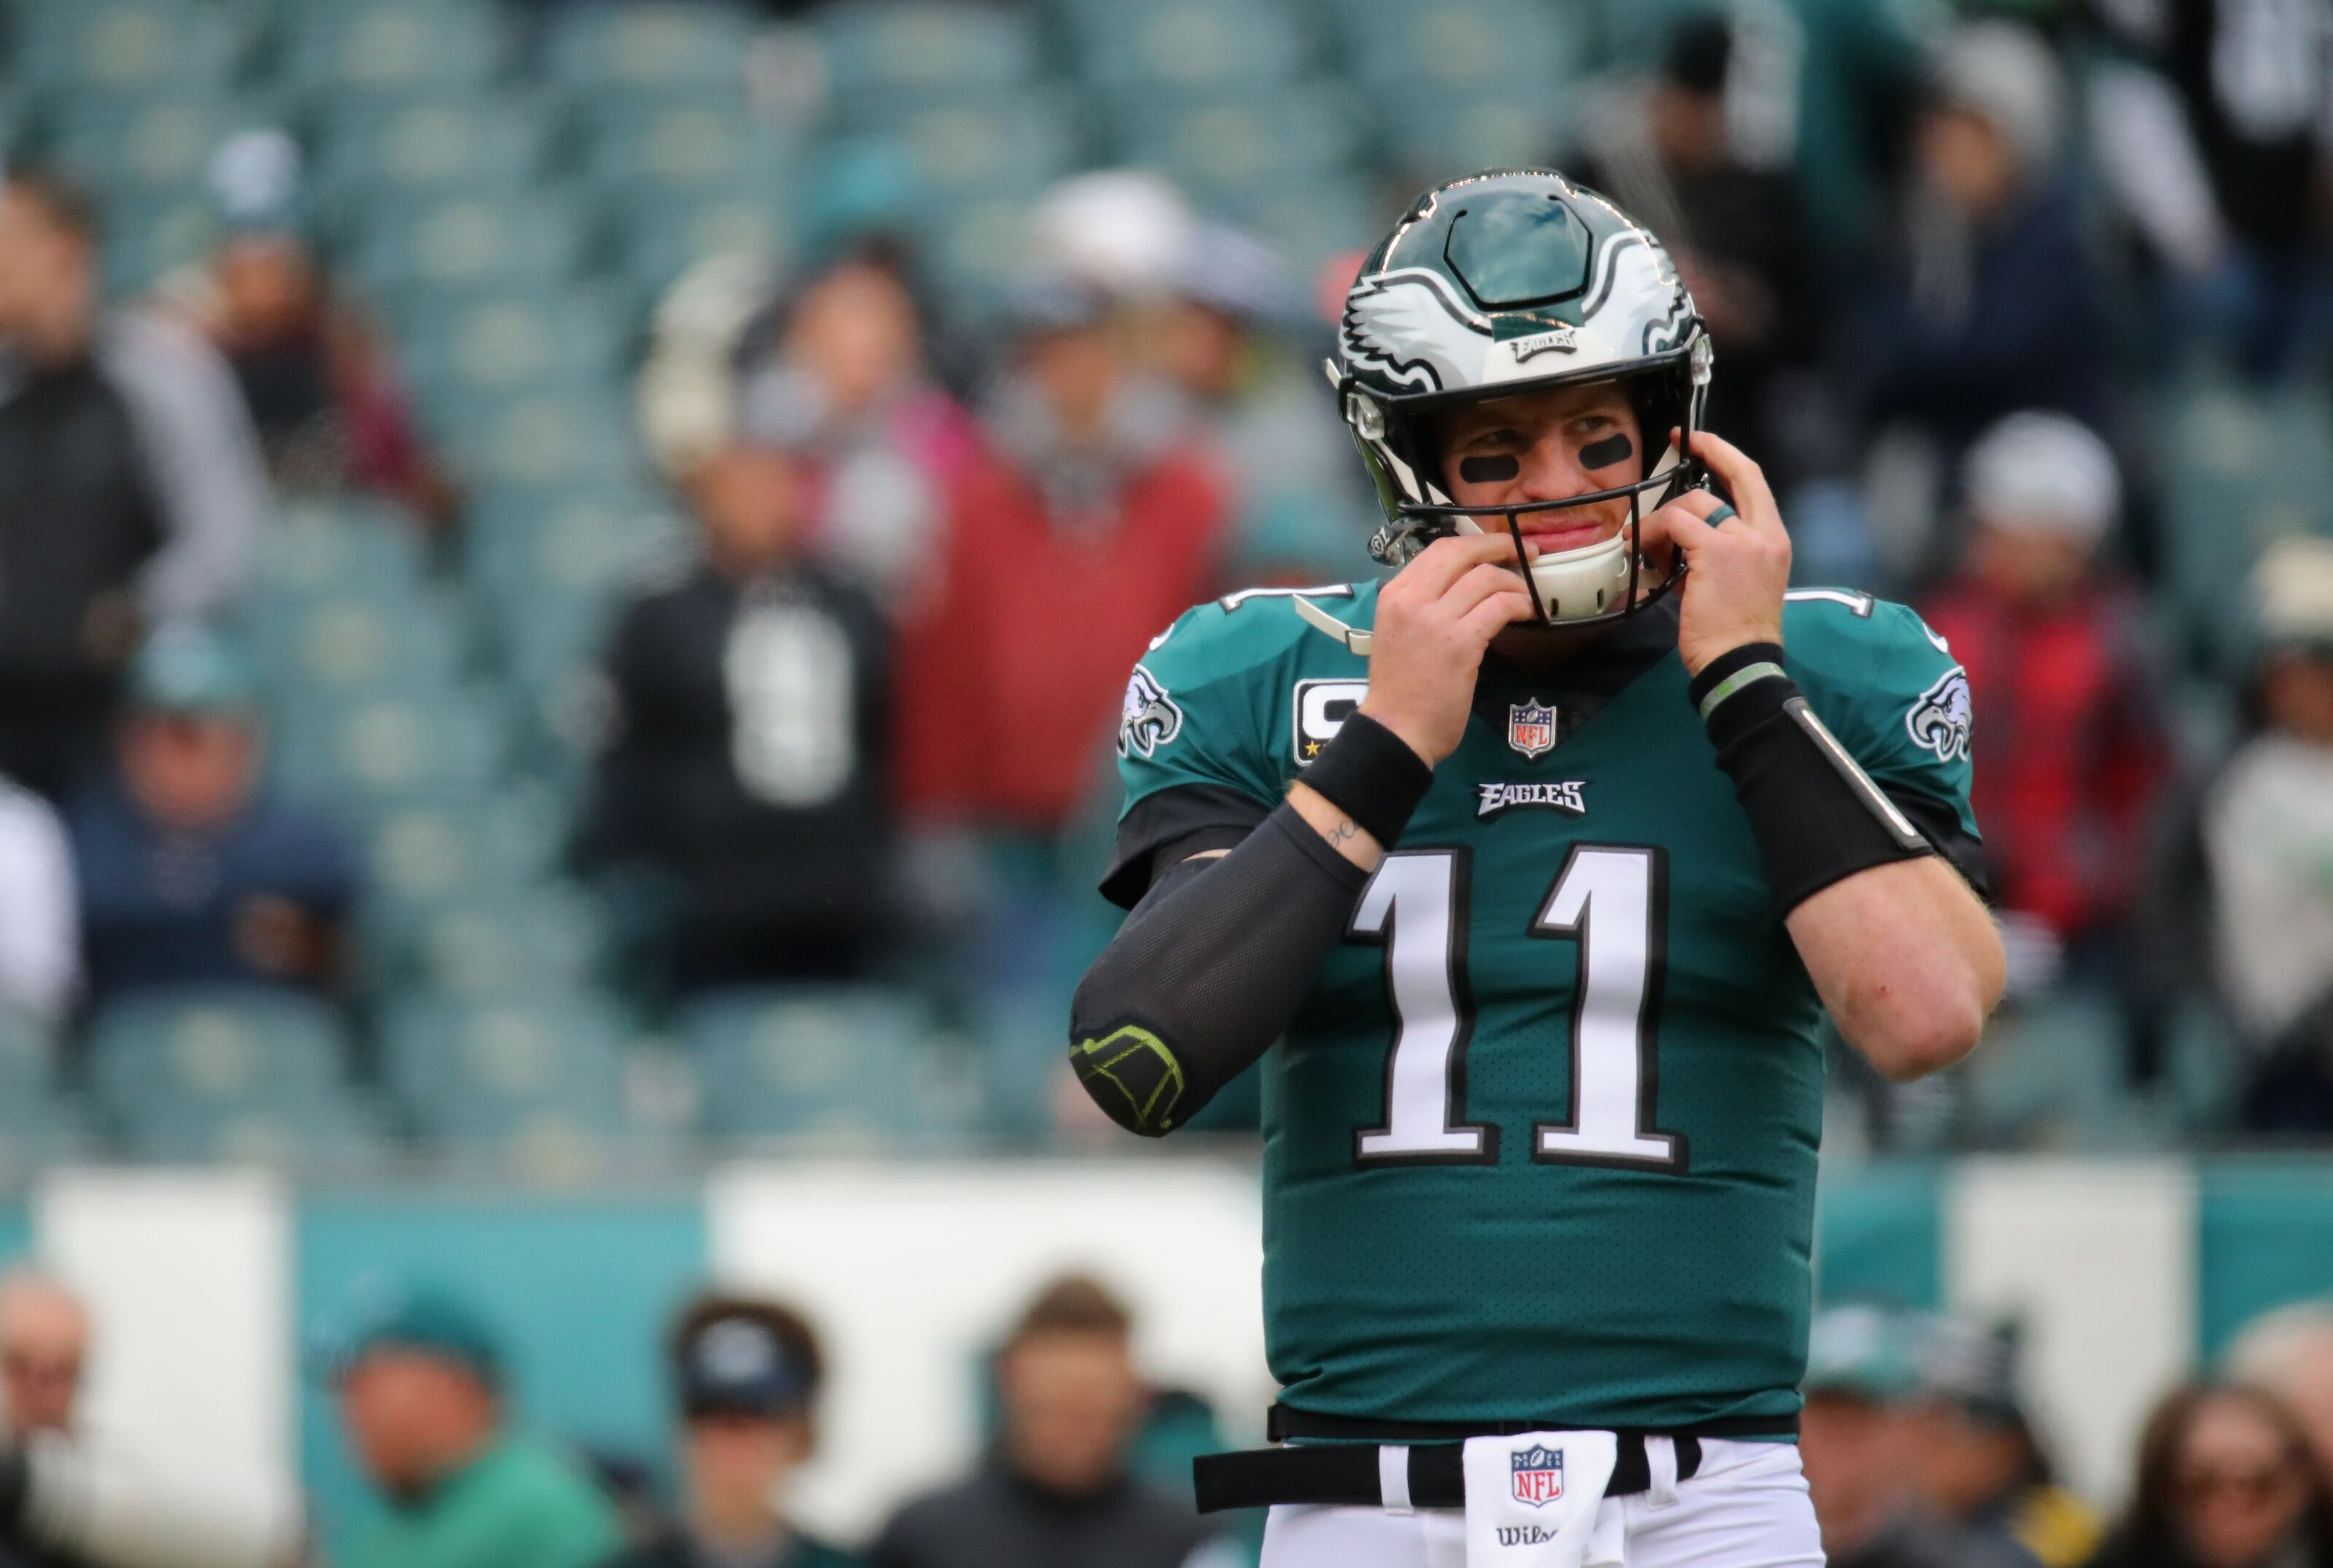 Carson Wentz is looking to follow the footsteps of Tom Brady to improve health